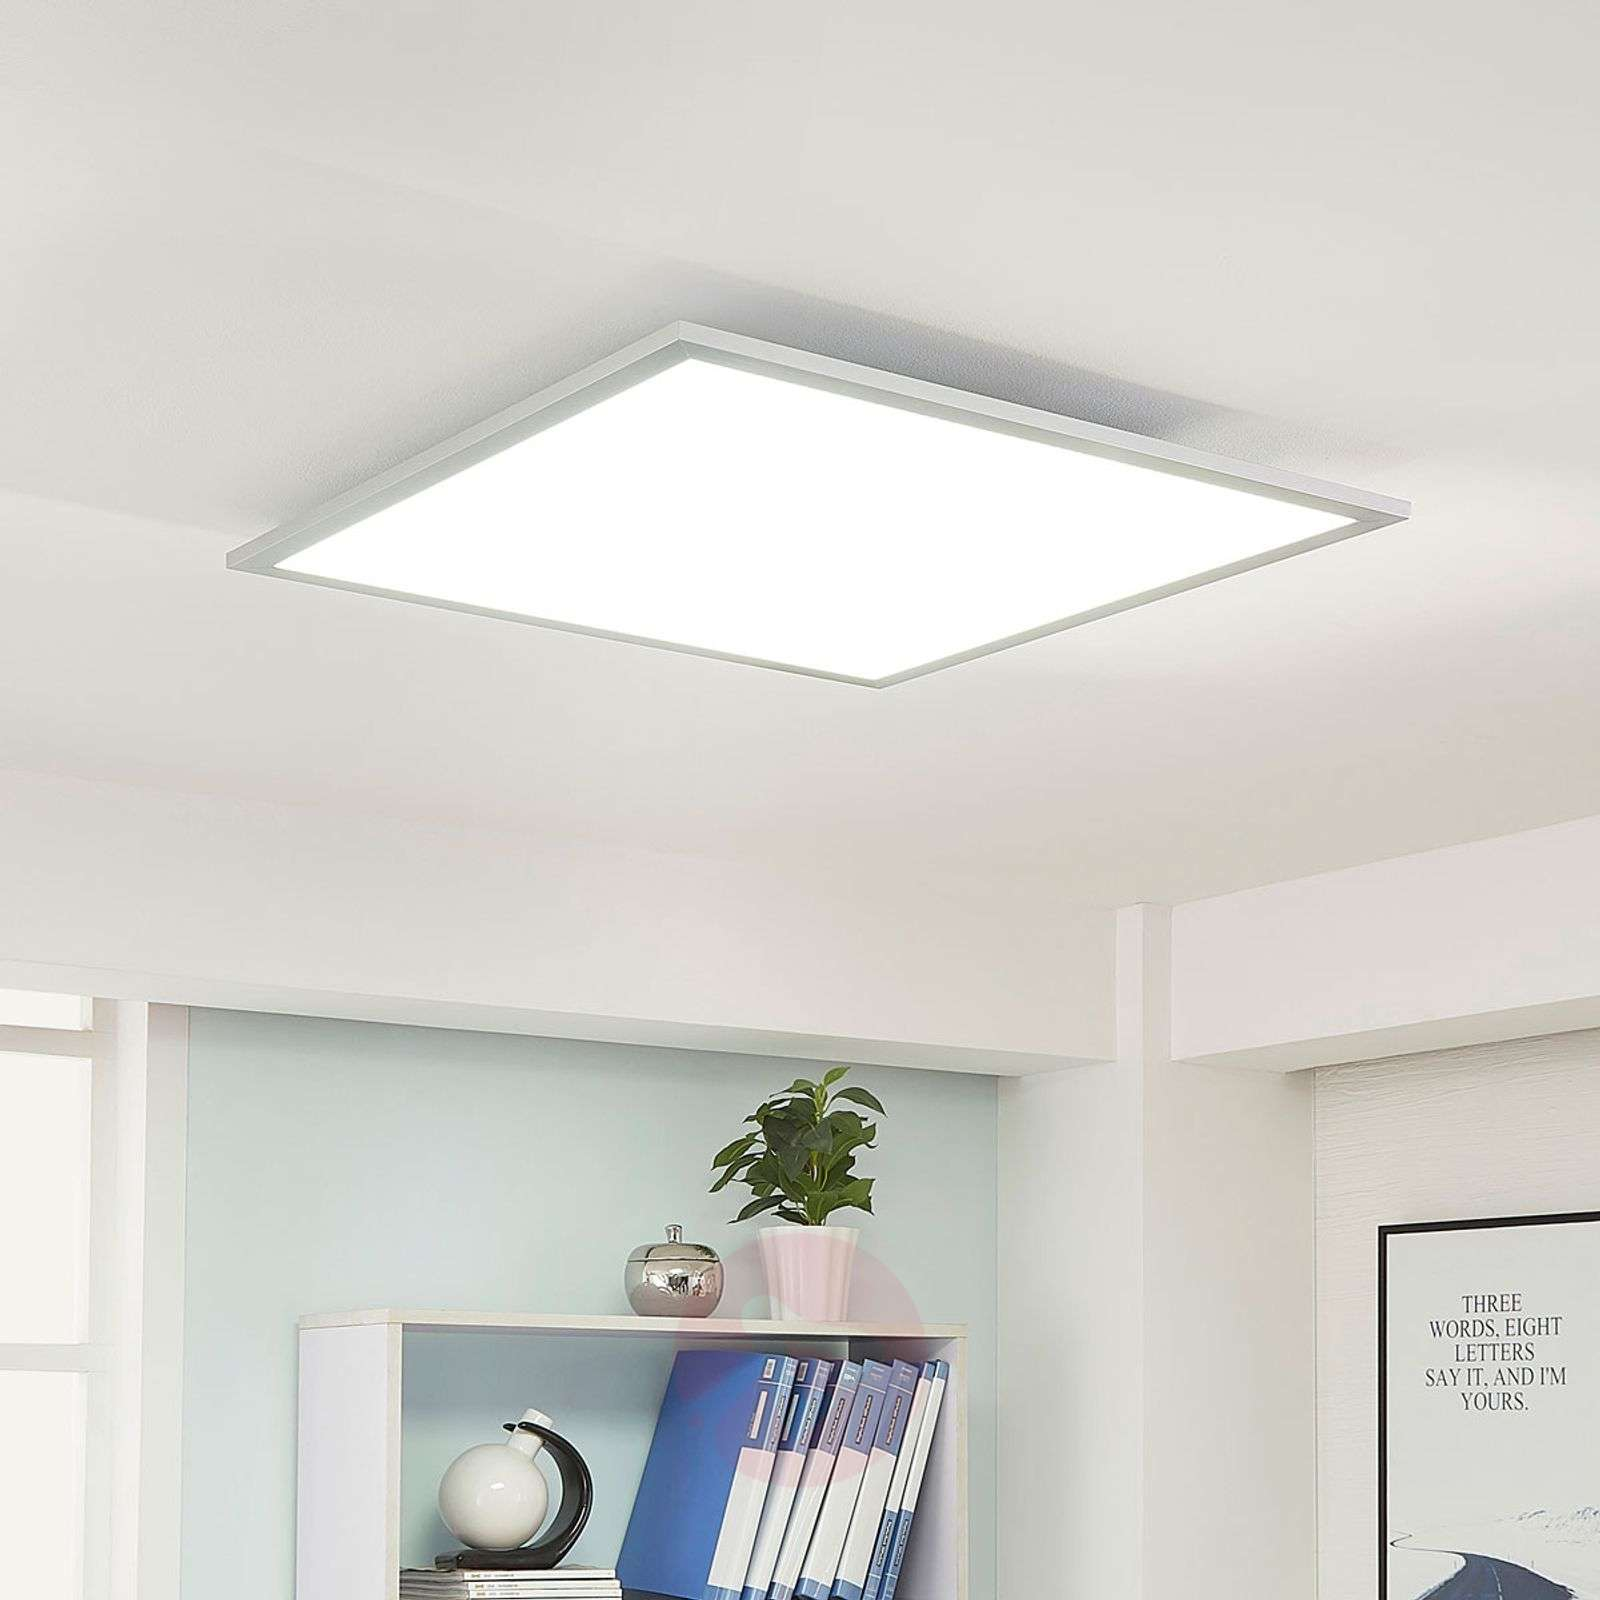 Dimmable LED panel Lysander, warm white daylight-9621551-01